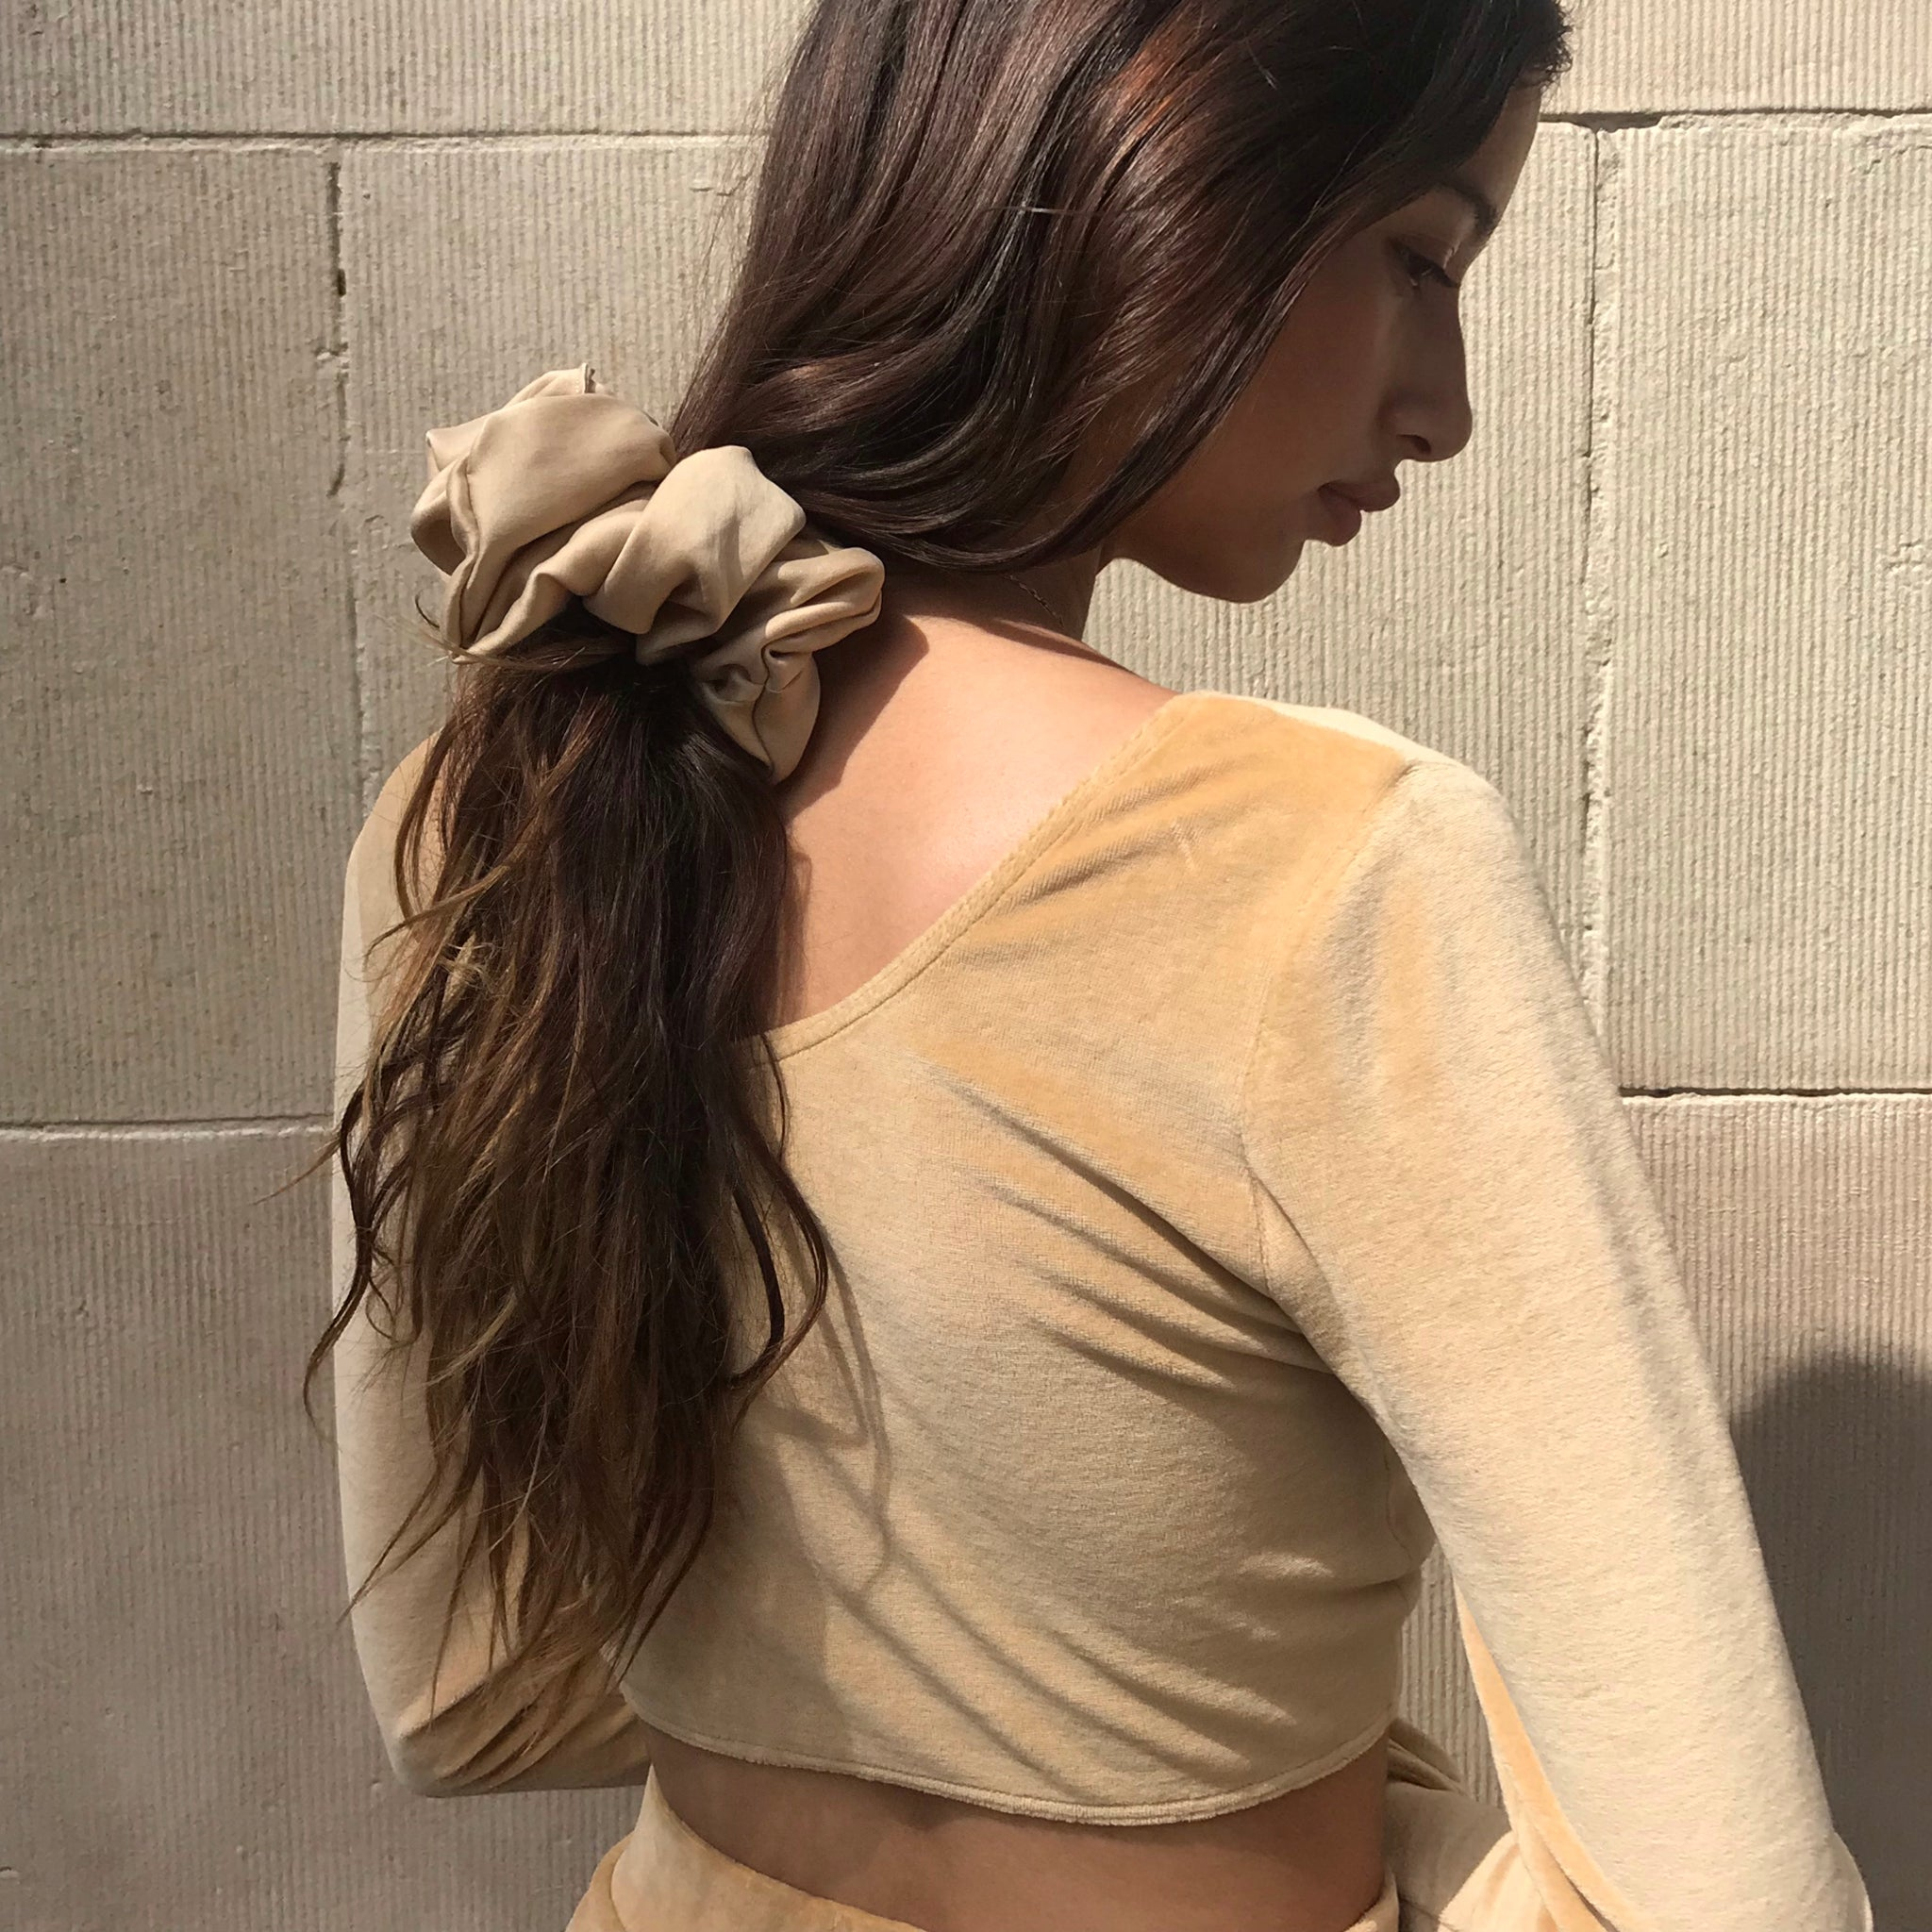 Selena Tie Top in Honey AT COST $25 FINAL SALE